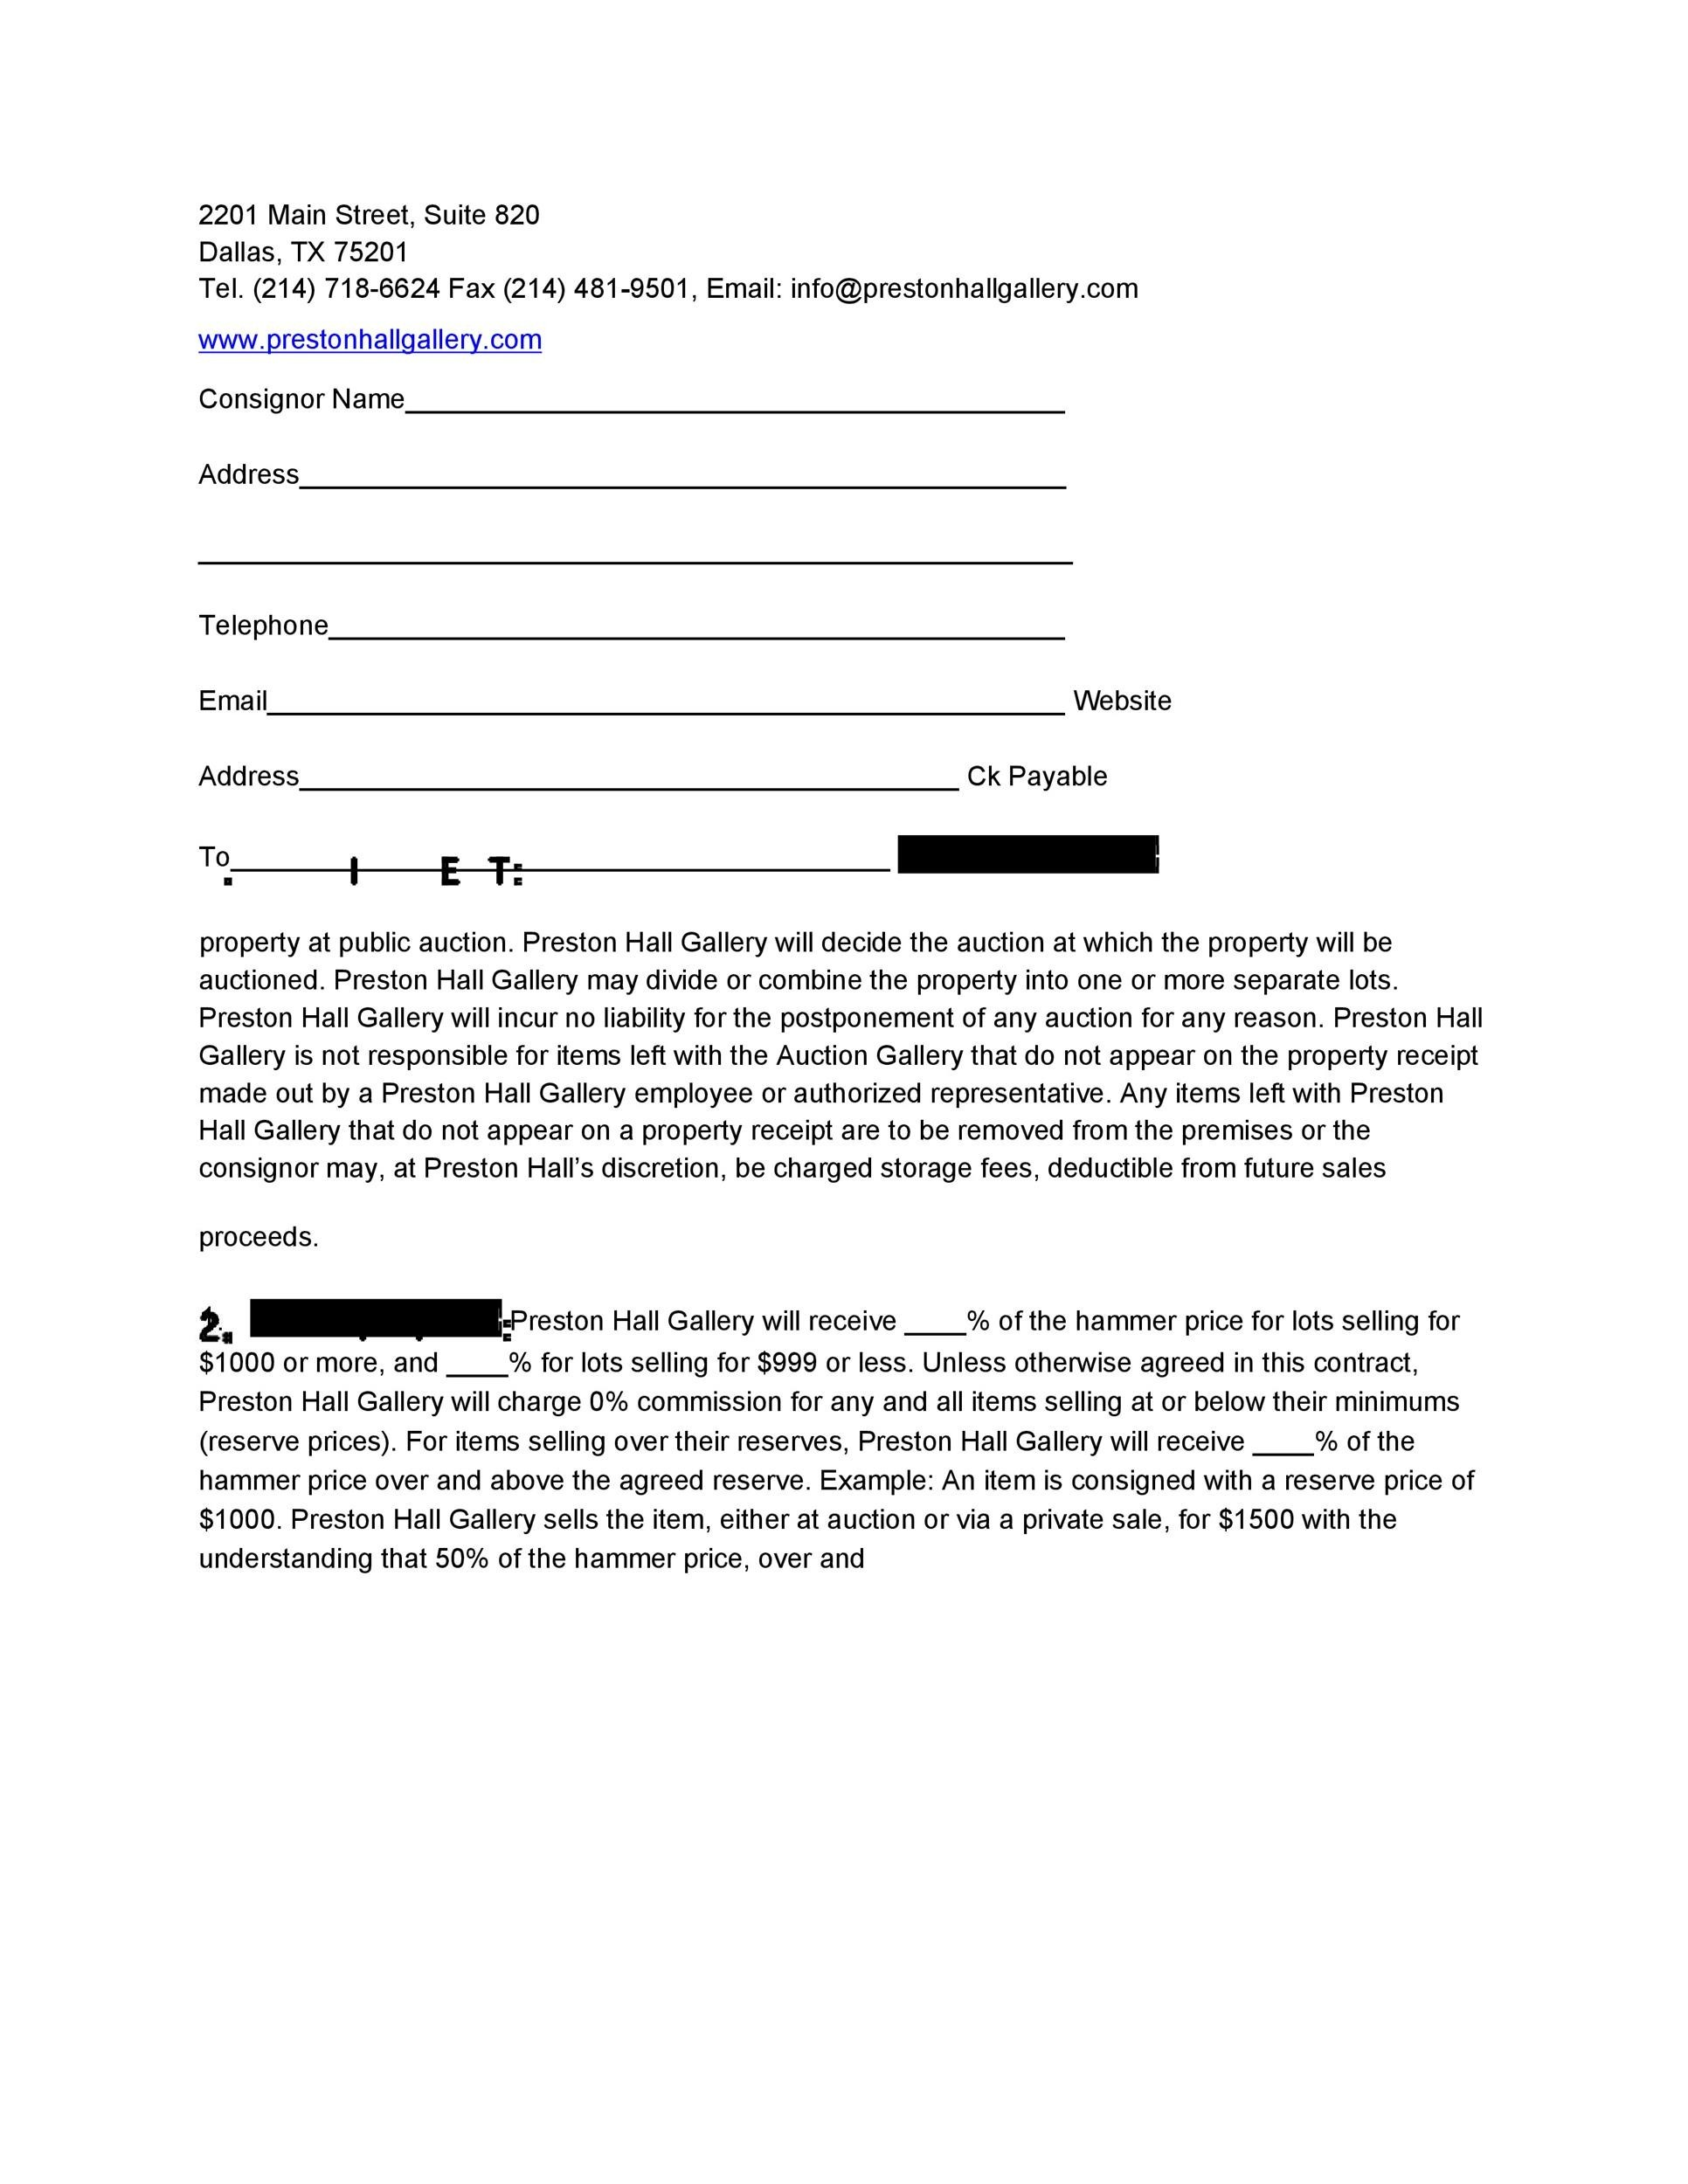 40+ Best Consignment Agreement Templates  Forms - Template Lab - consignment form template